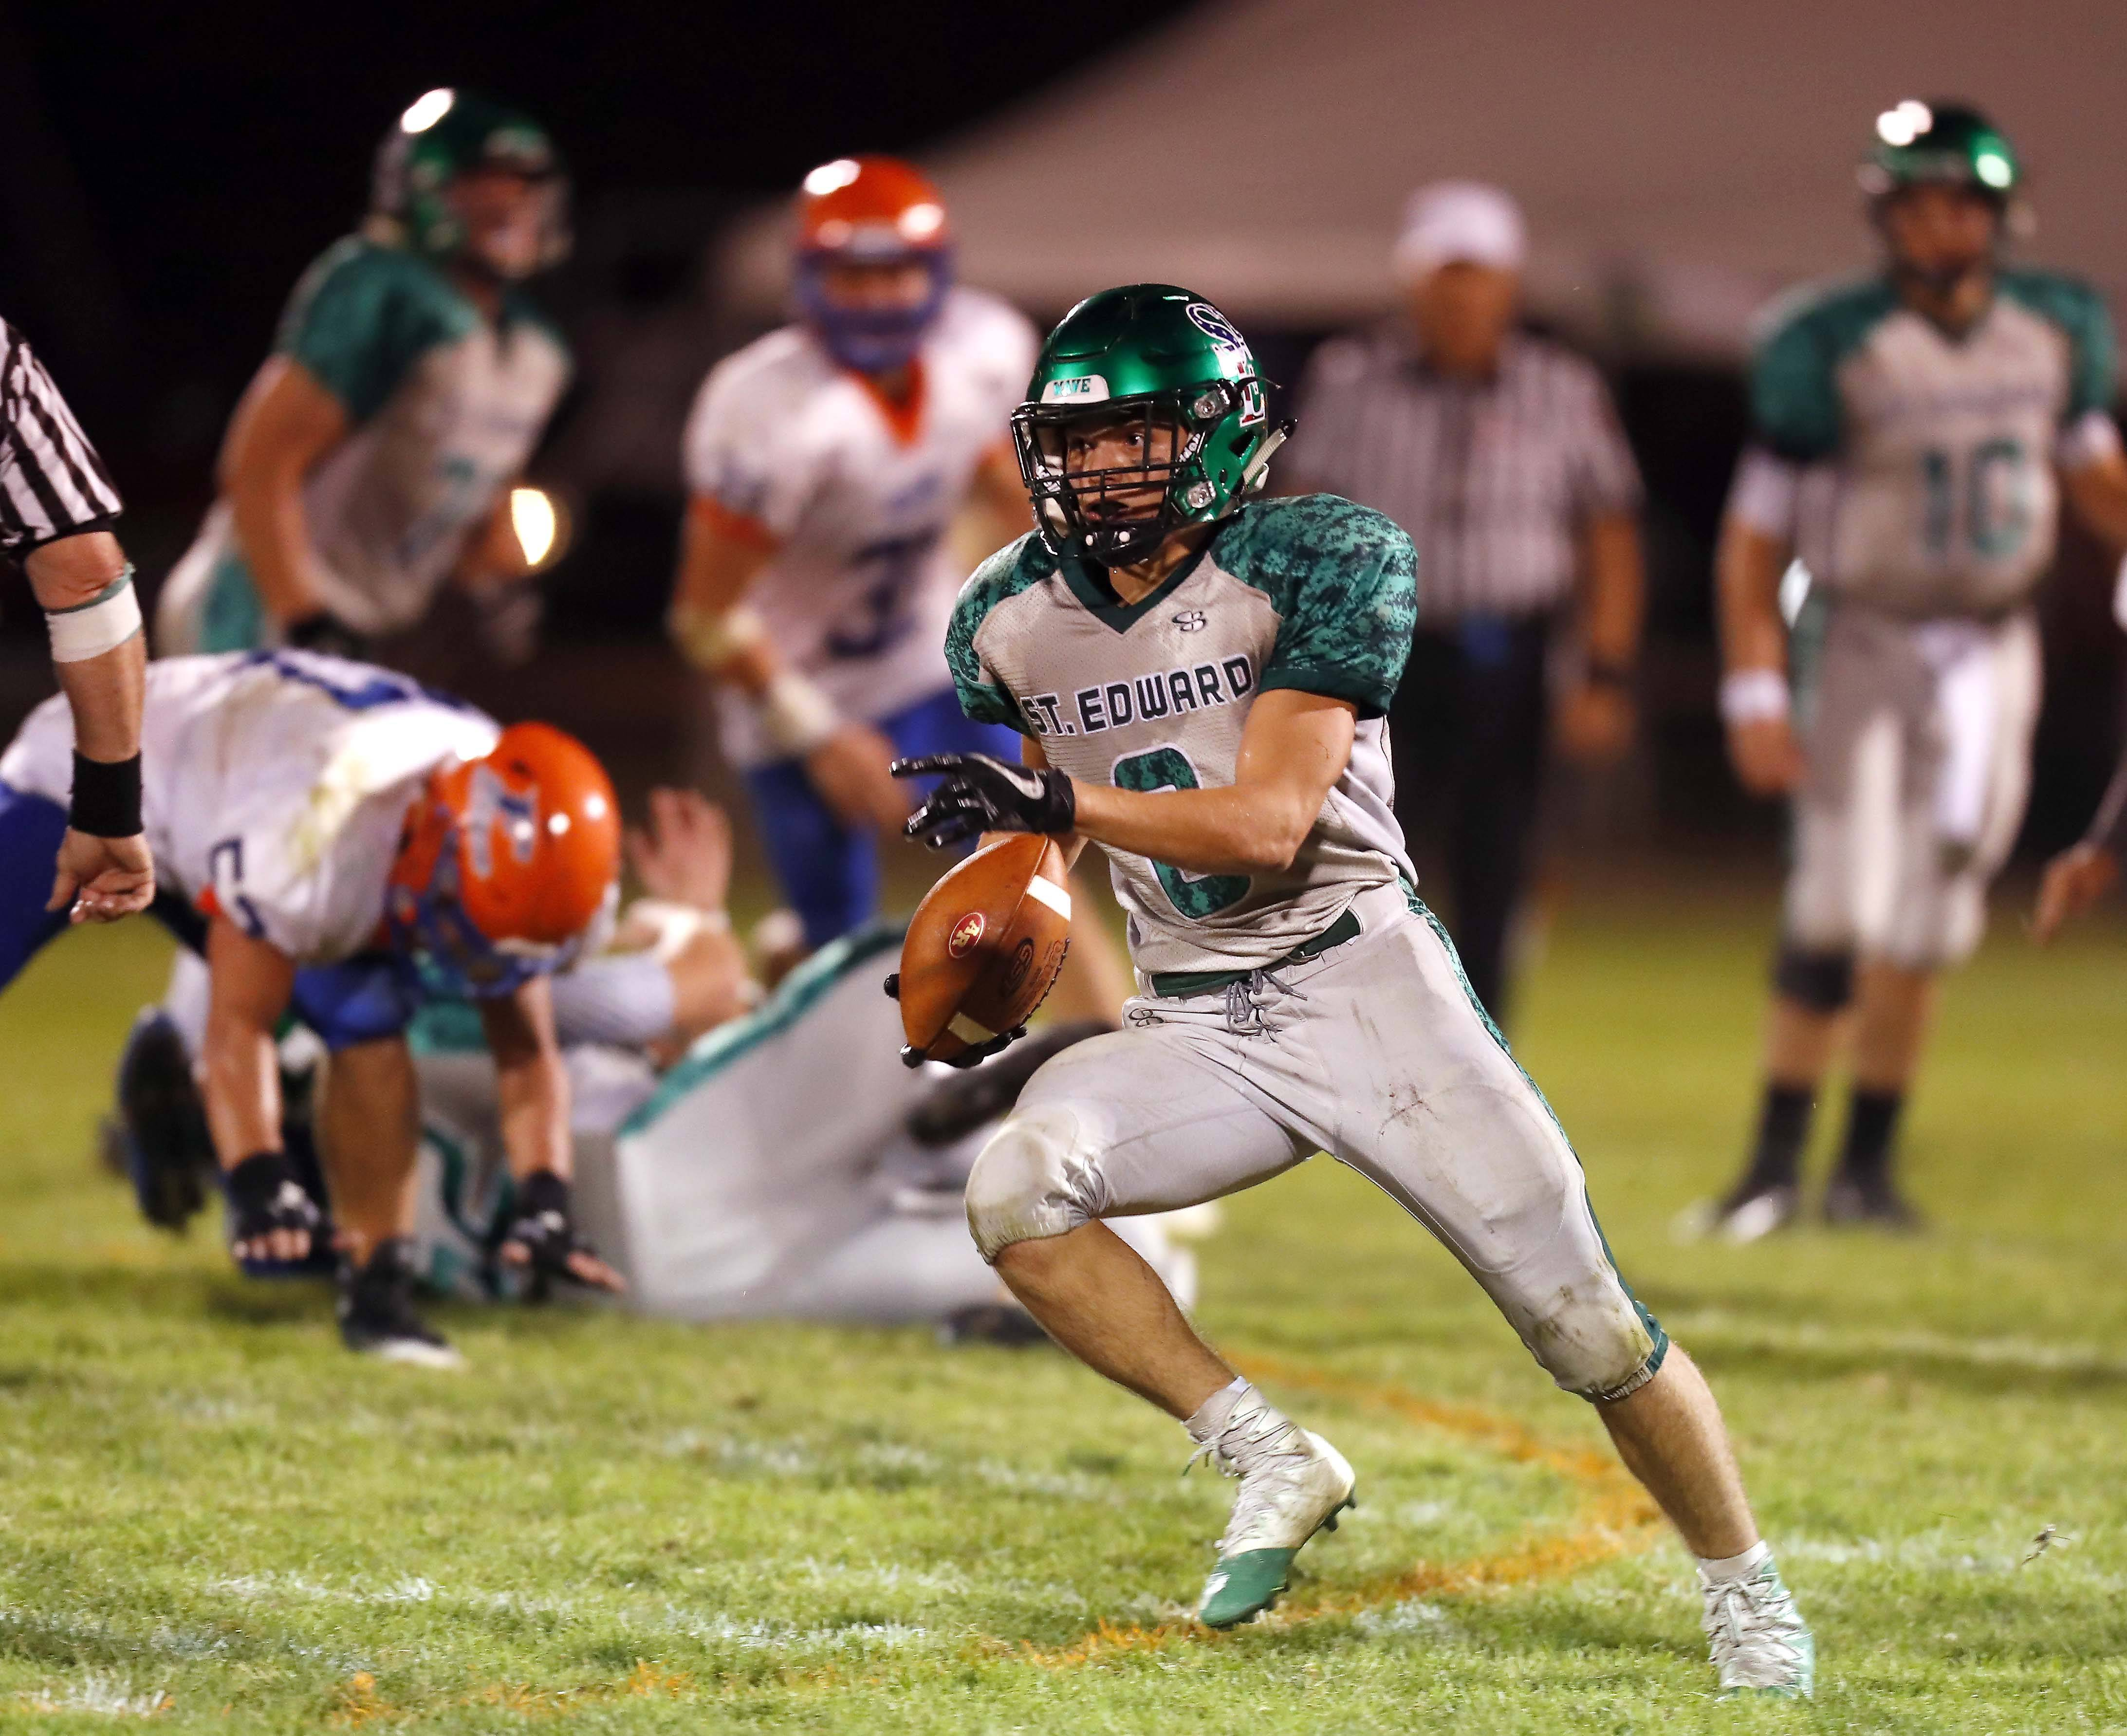 Brian Hill/bhill@dailyherald.com St. Edward's Nick Wright (8) moves up field for a long touchdown Friday during Fenton at St. Edward football at Greg True Field in Elgin.